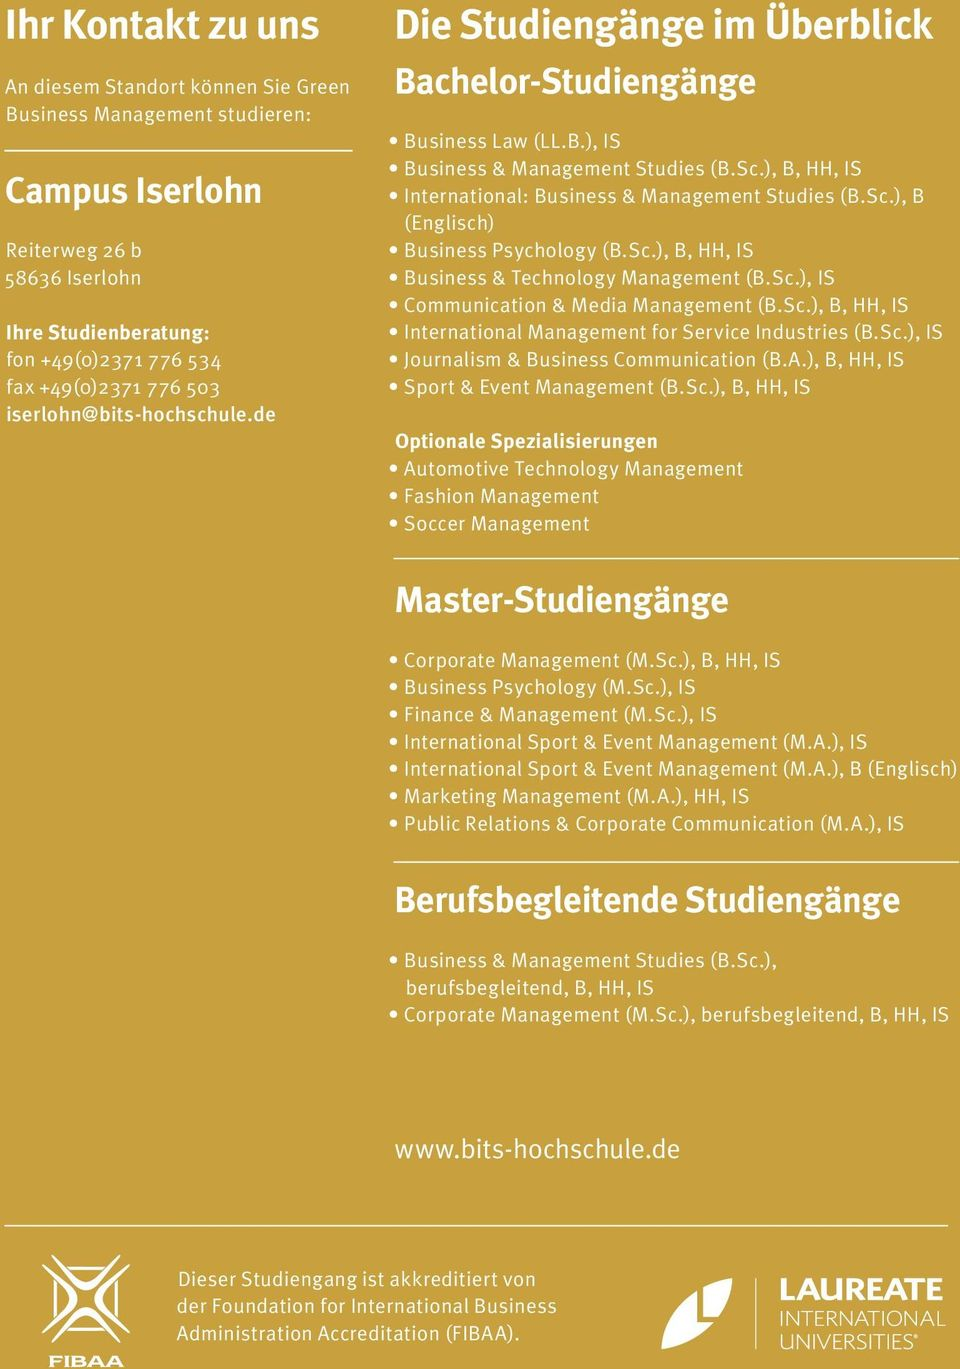 ), B, HH, IS International: Business & Management Studies (B.Sc.), B (Englisch) Business Psychology (B.Sc.), B, HH, IS Business & Technology Management (B.Sc.), IS Communication & Media Management (B.